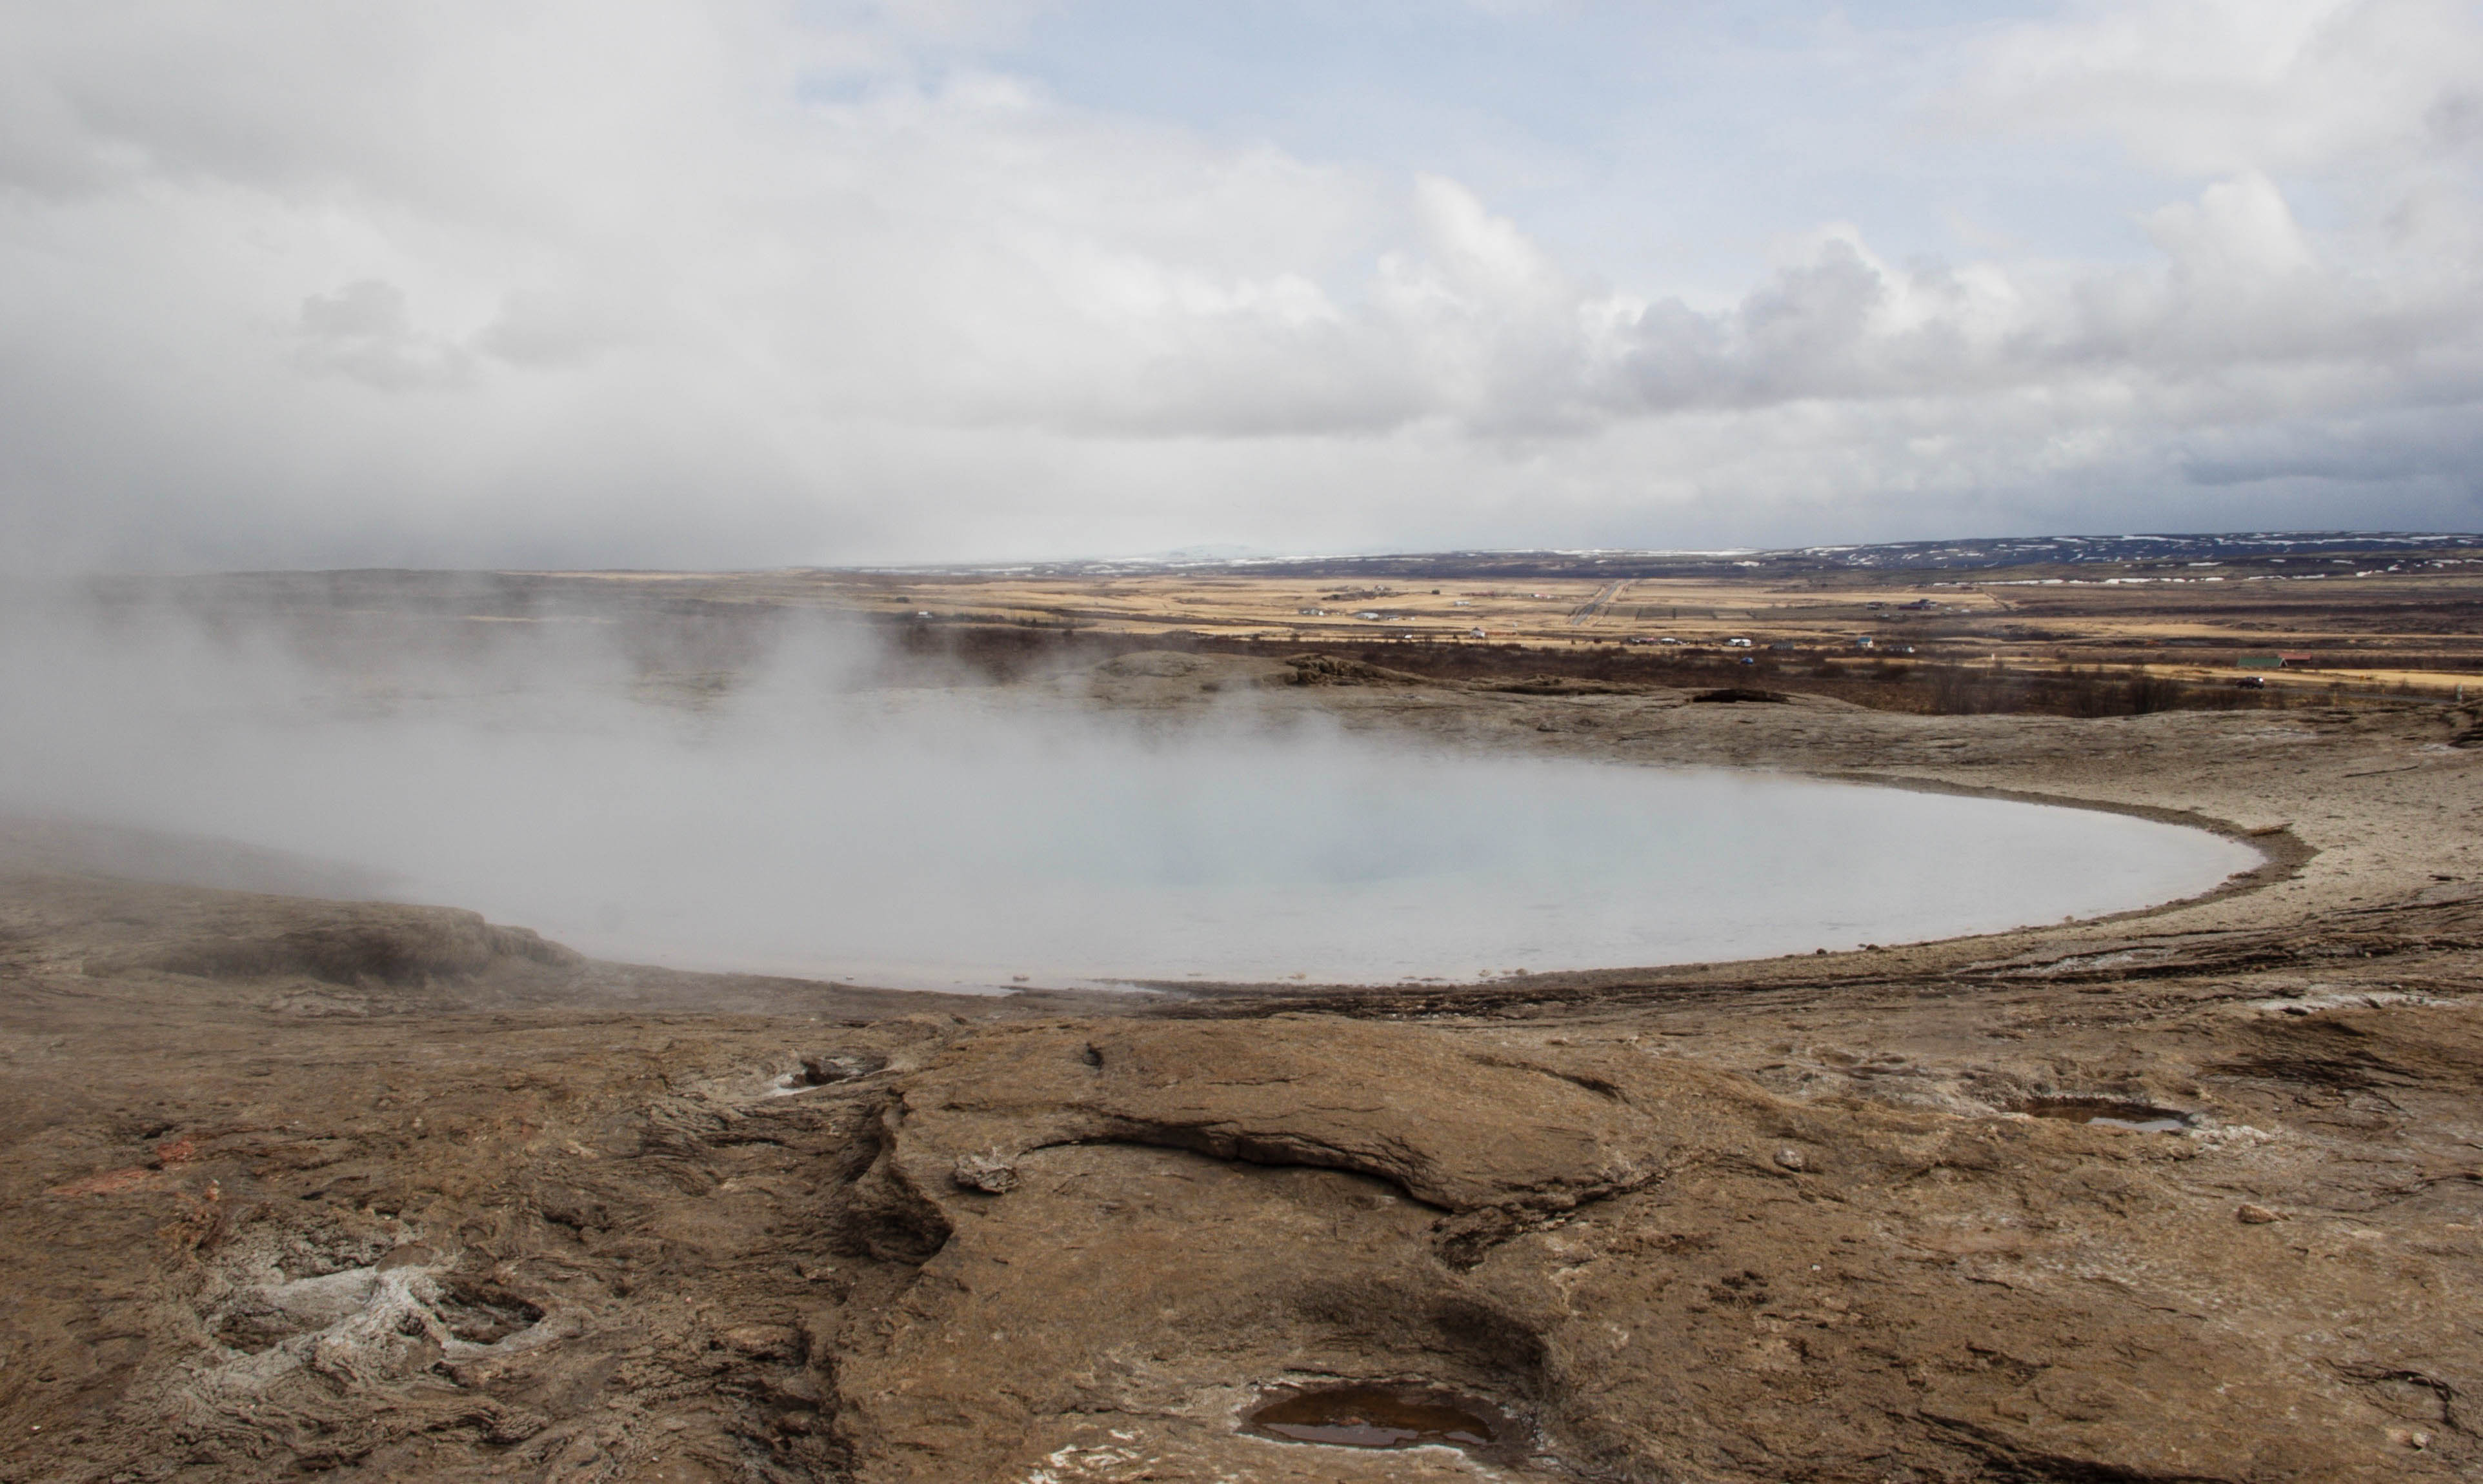 Hot Springs and Erupting Geysers in the Land of the Boiling Waters